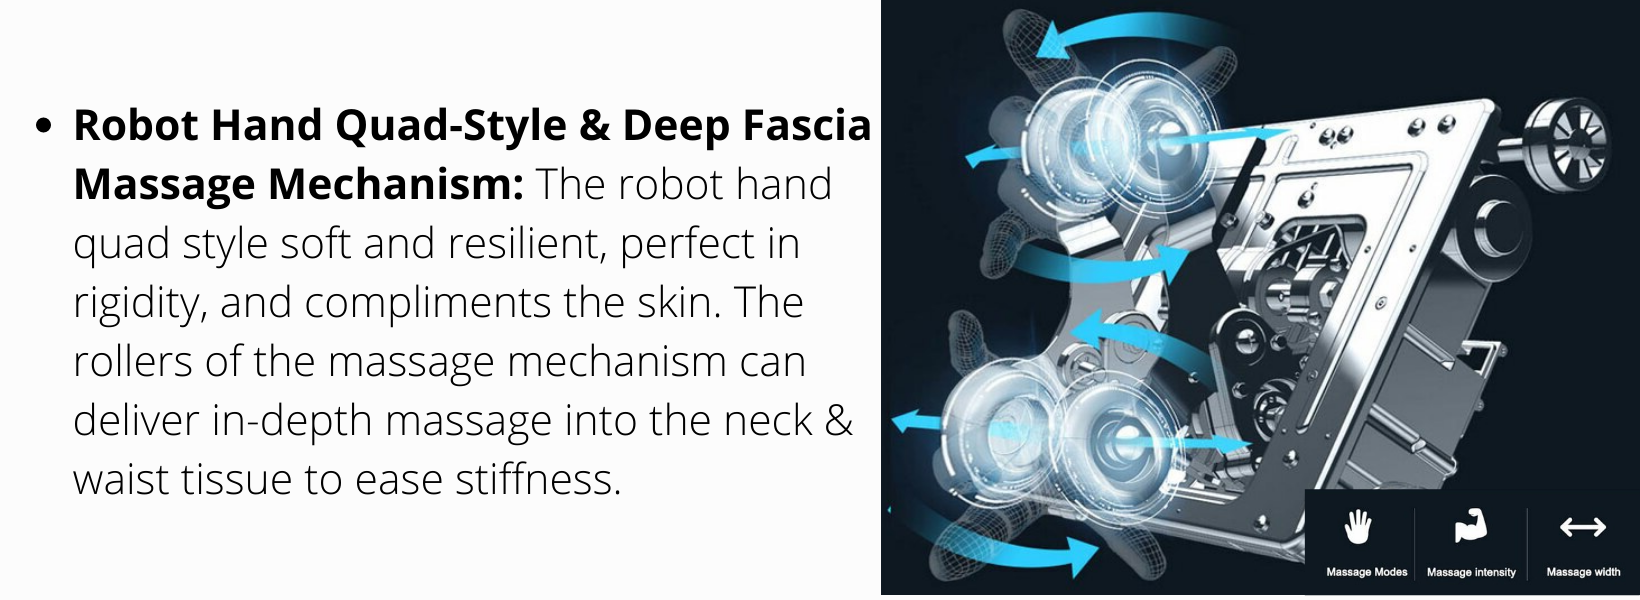 Robot Hand Quad-Style & Deep Fascia Massage Mechanism: The robot hand quad style soft and resilient, perfect in rigidity, and compliments the skin. The rollers of the massage mechanism can deliver in-depth massage into the neck & waist tissue to ease stiffness.